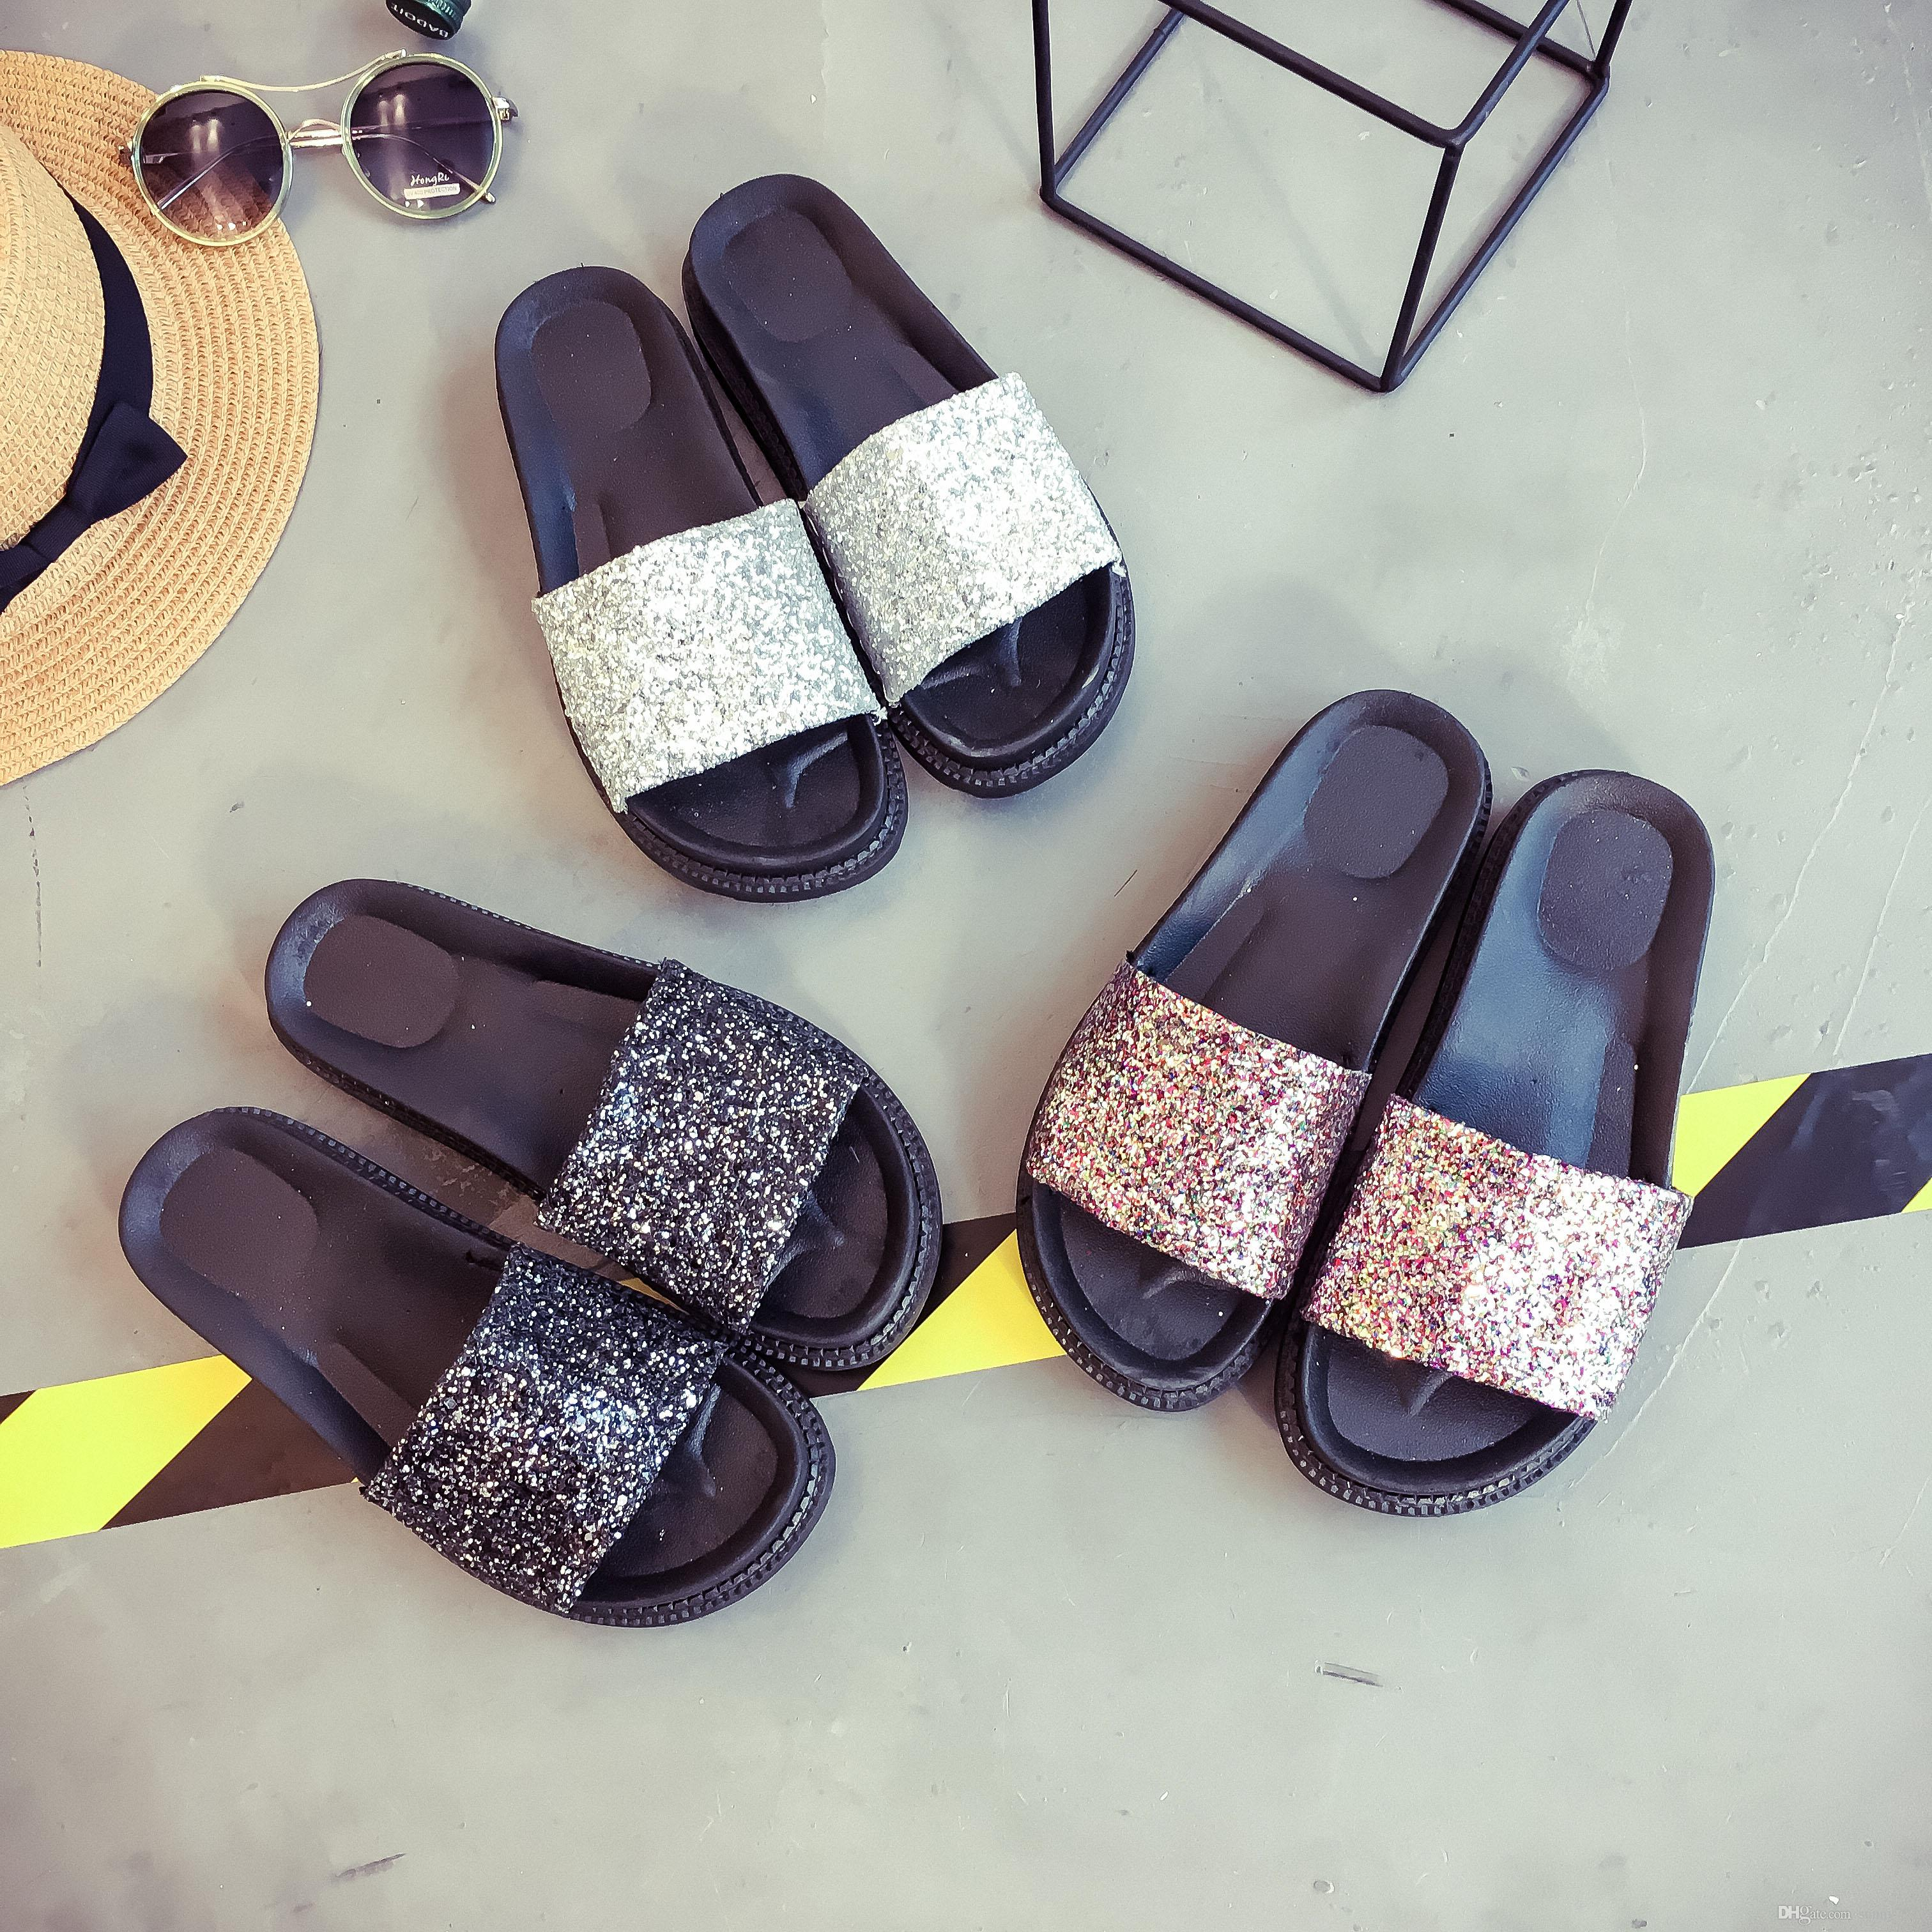 2018 Glitter Slippers Summer Beach Flats Casual Platform Shoes Woman Bling  Slides Slip On Women Shoes Winter Boots For Women Boots Online From  Sunny7979 c645ddf01f70